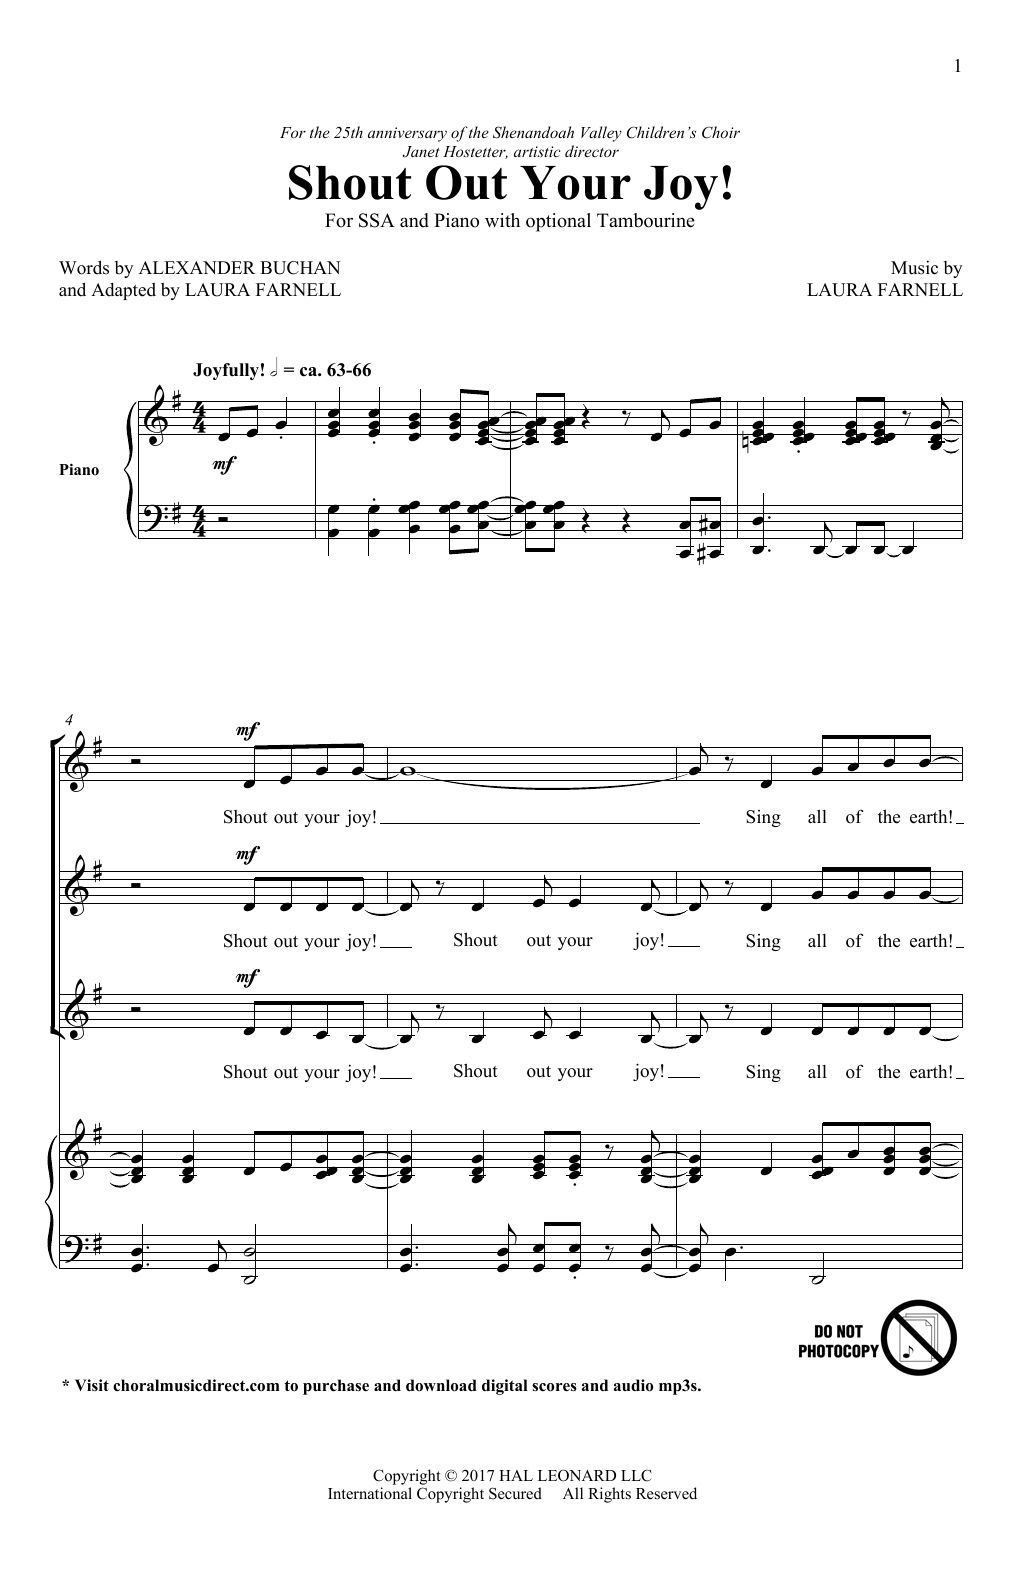 Shout Out Your Joy! Sheet Music